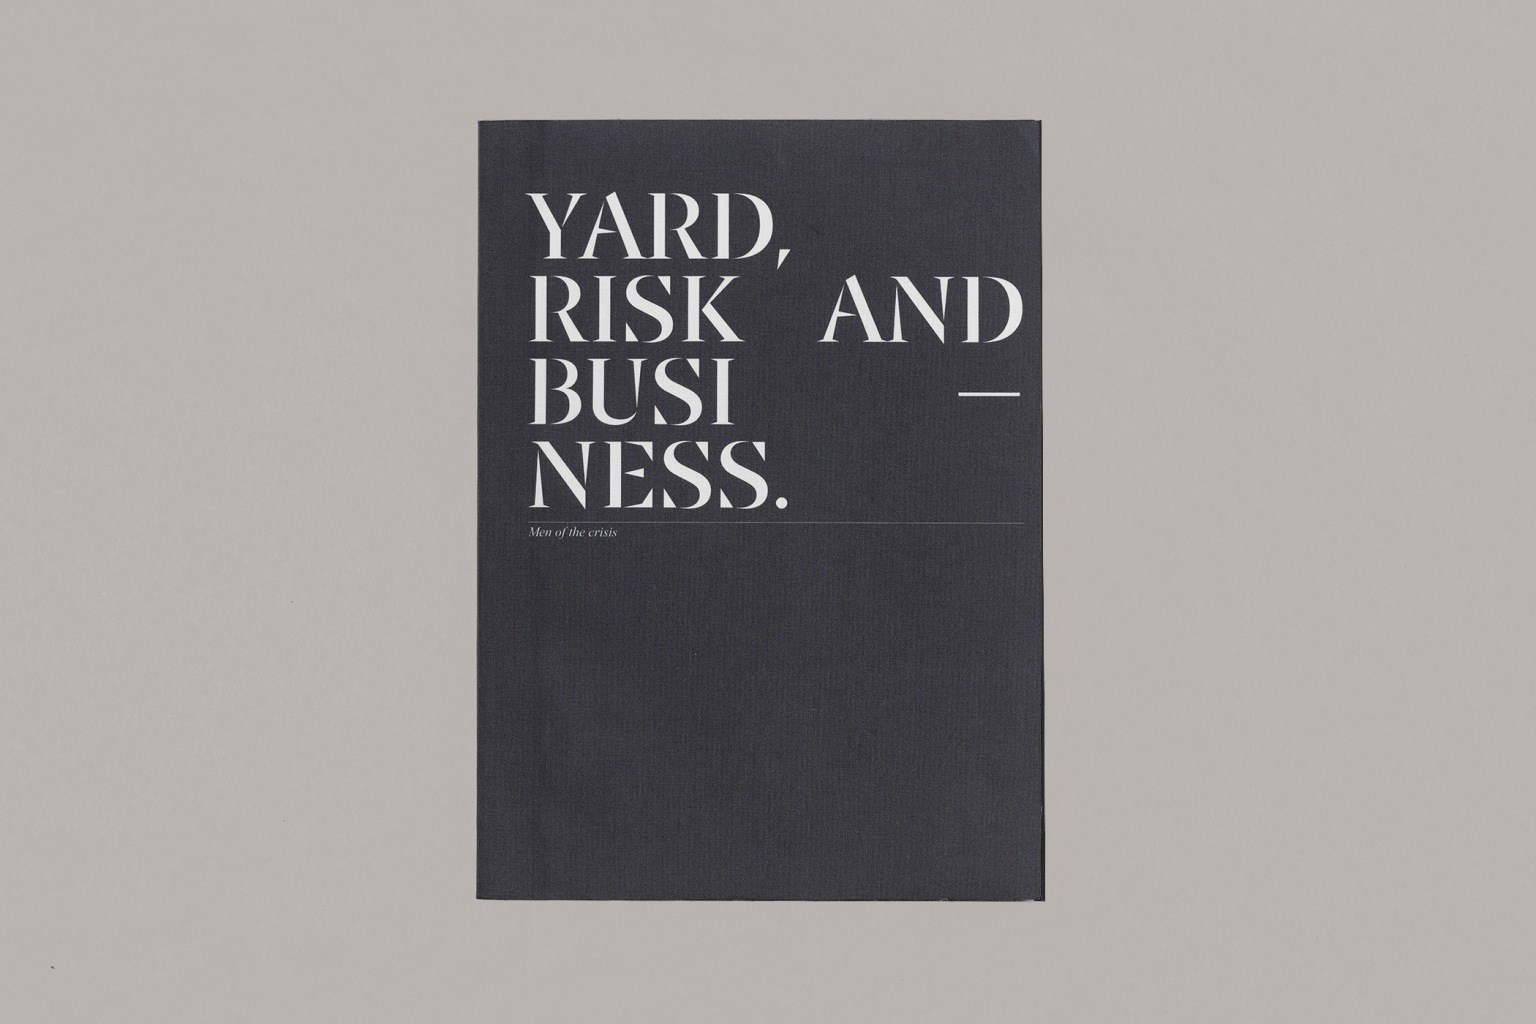 YARD, RISK AND BUSINESS